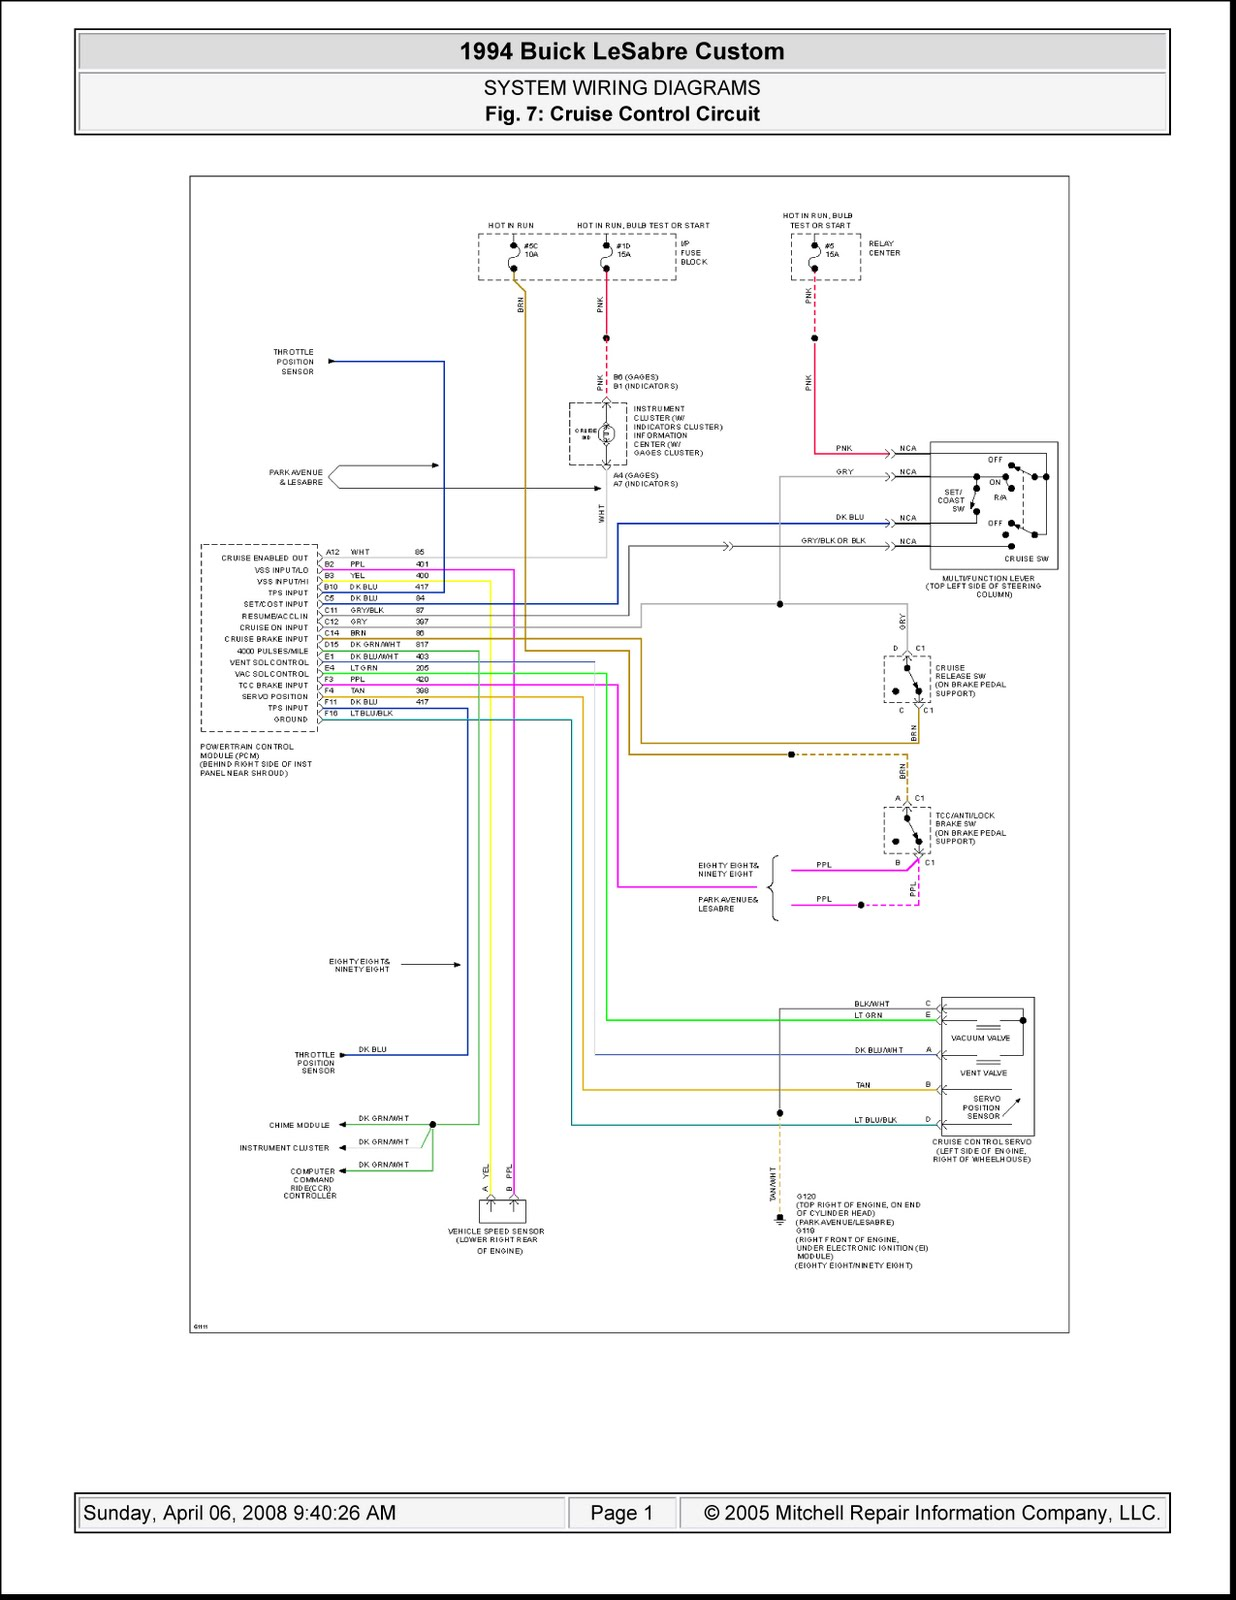 June 2011 Schematic Wiring Diagrams Solutions Peugeot Cruise Control Diagram 1994 Buick Lesabre Custom System Circuit